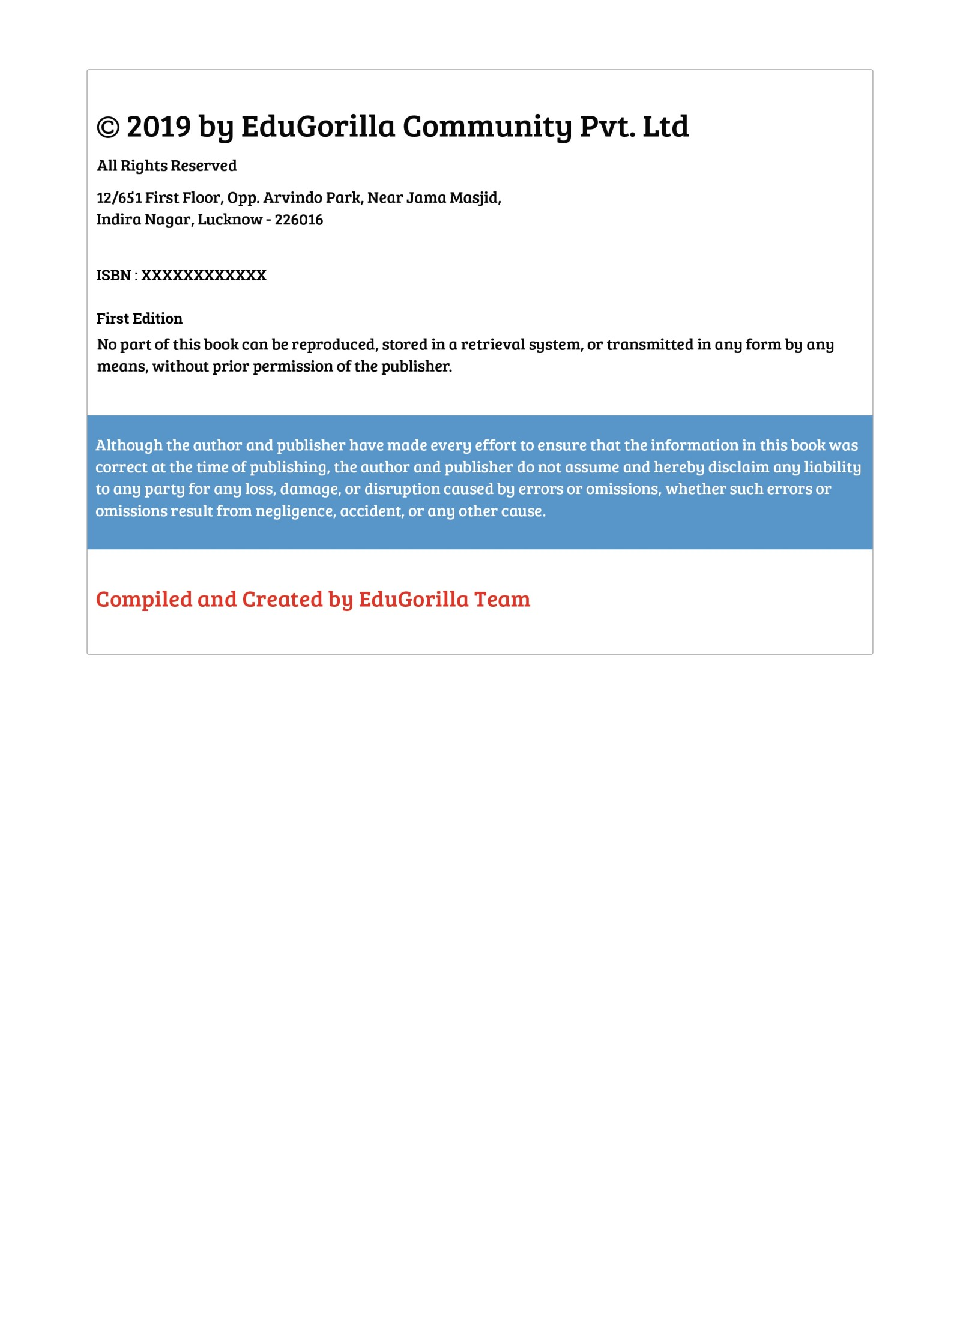 EduGorilla EPFO Assistant (Mains) - 2020 - 5 Mock Test - Latest Edition Practice Kit - Page 4